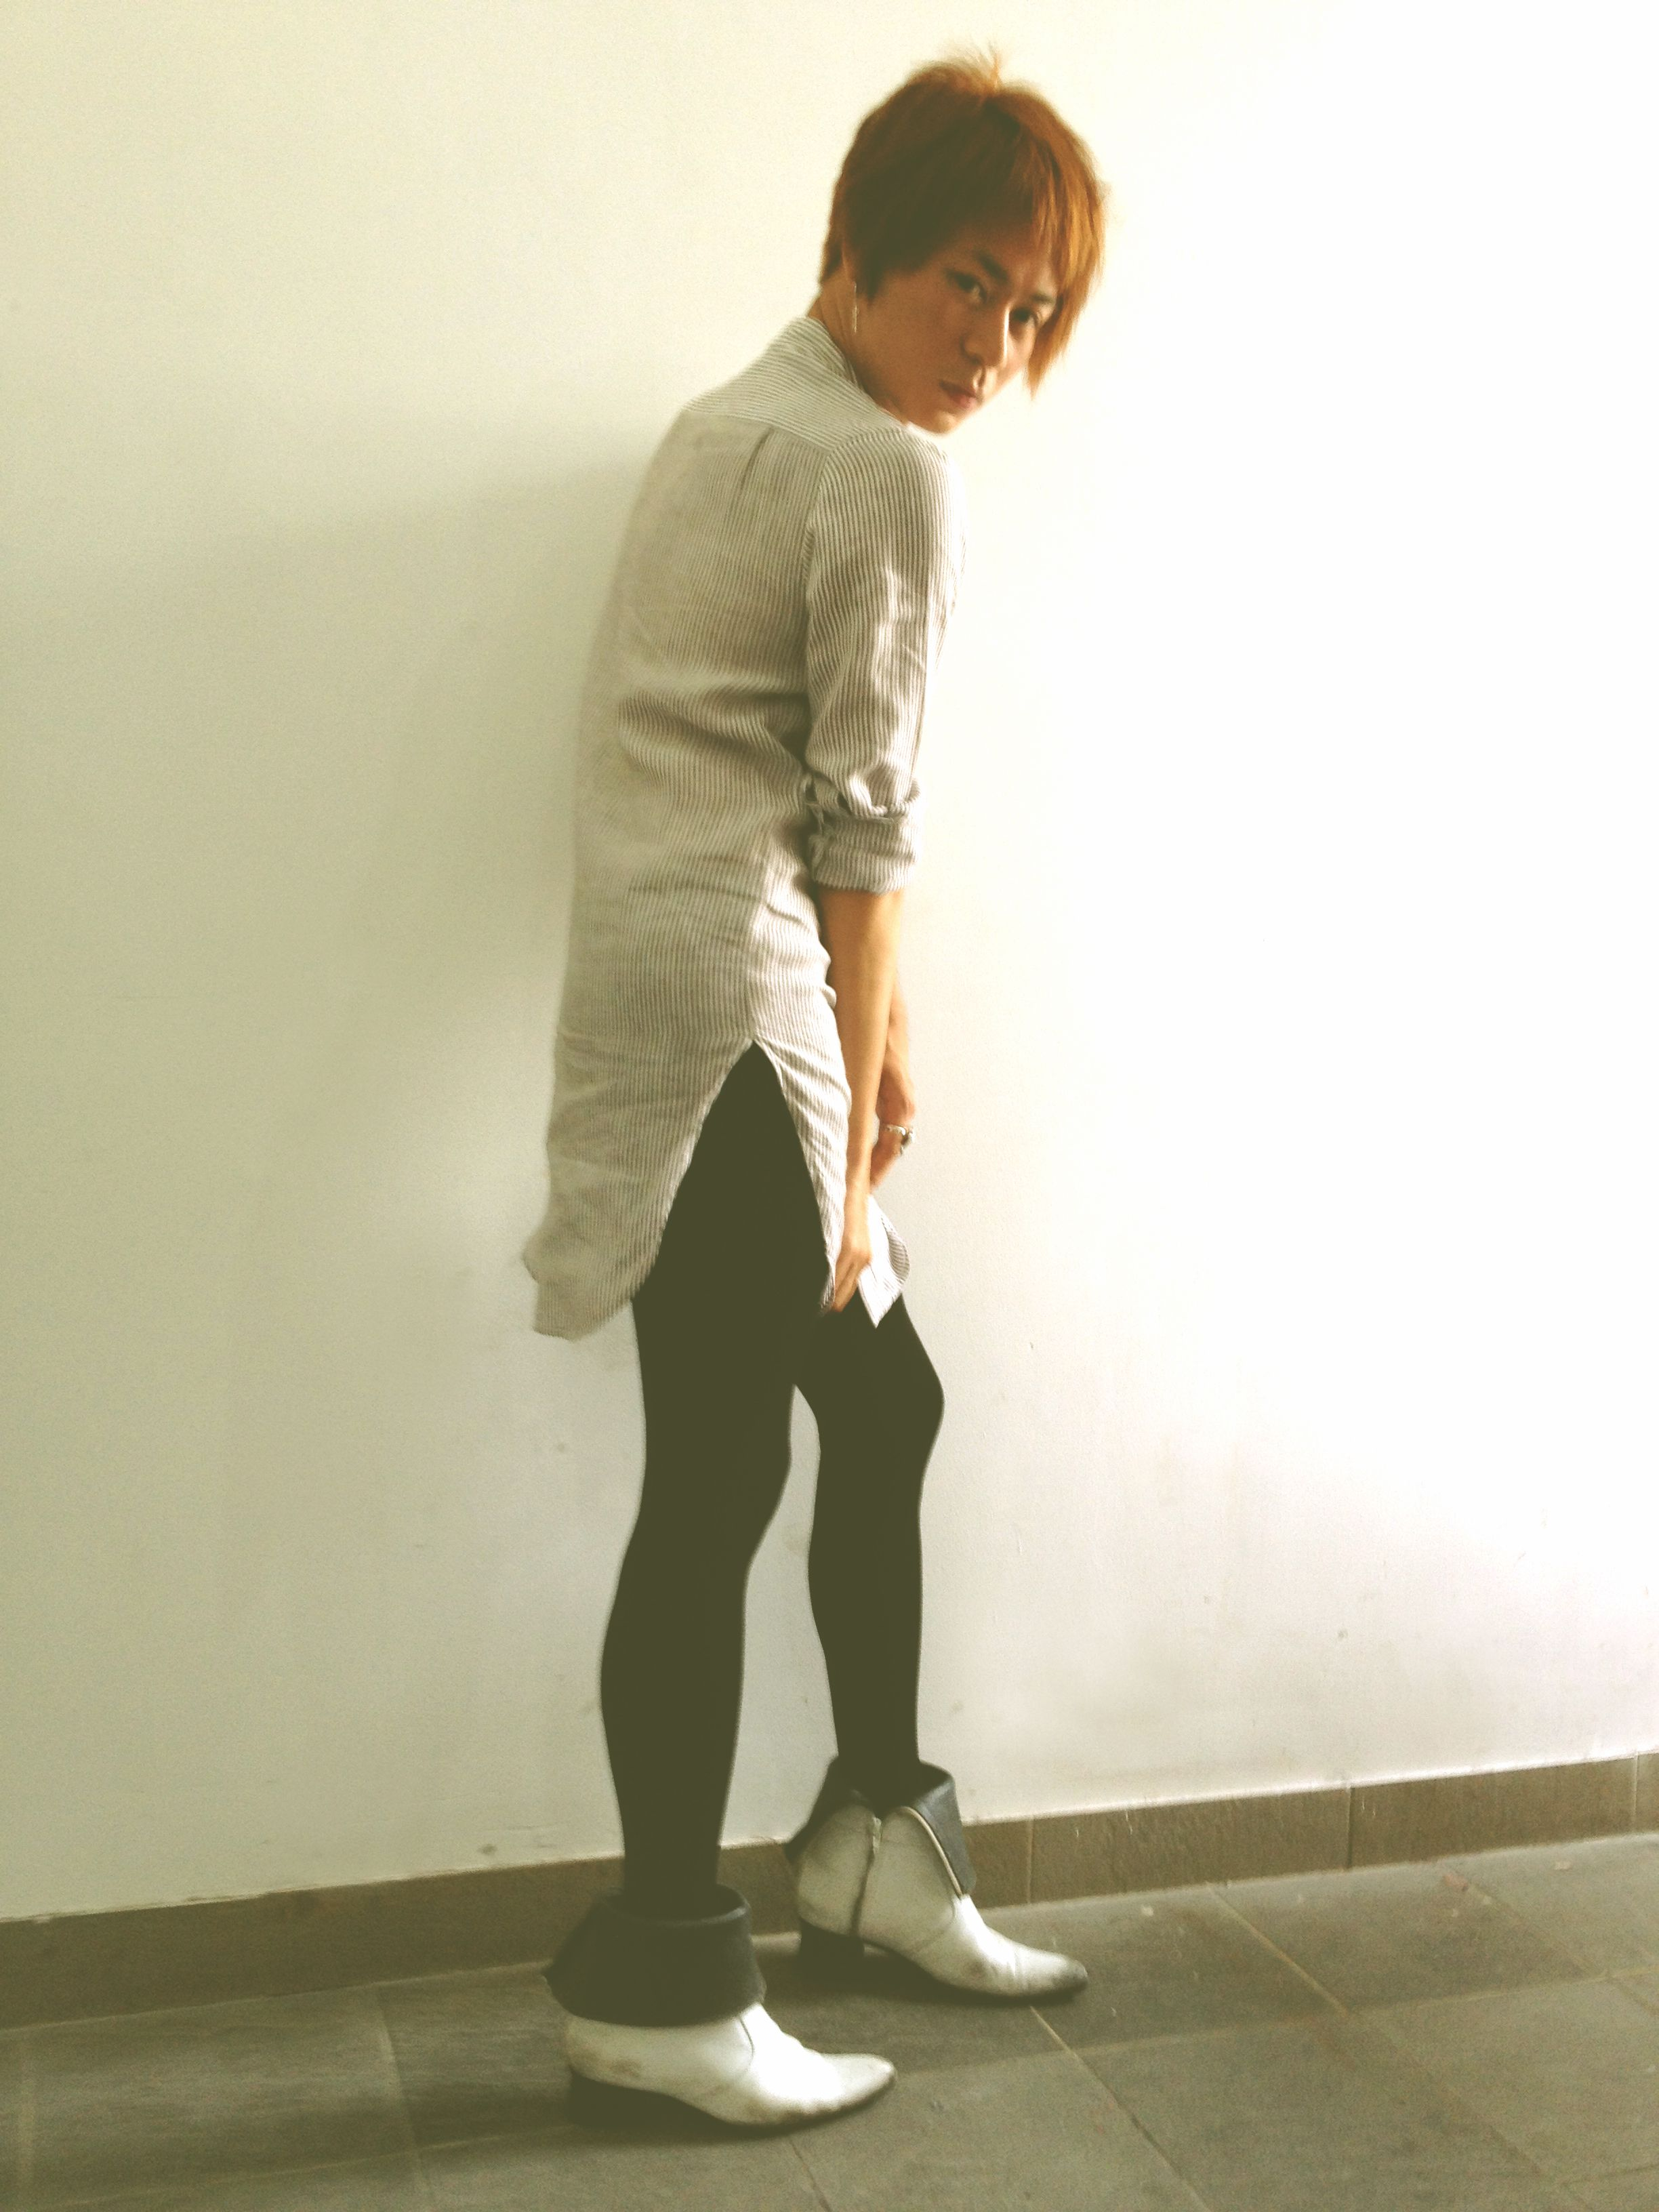 "Style guide: The Court Jester ~ Wednesday at work. ""Legging was first worn by men since the Medieval ages, and society said women lead fashion. I vote for fashion equality, do you dare to wear?"" Valentine Vu #fashion #legging #boots"